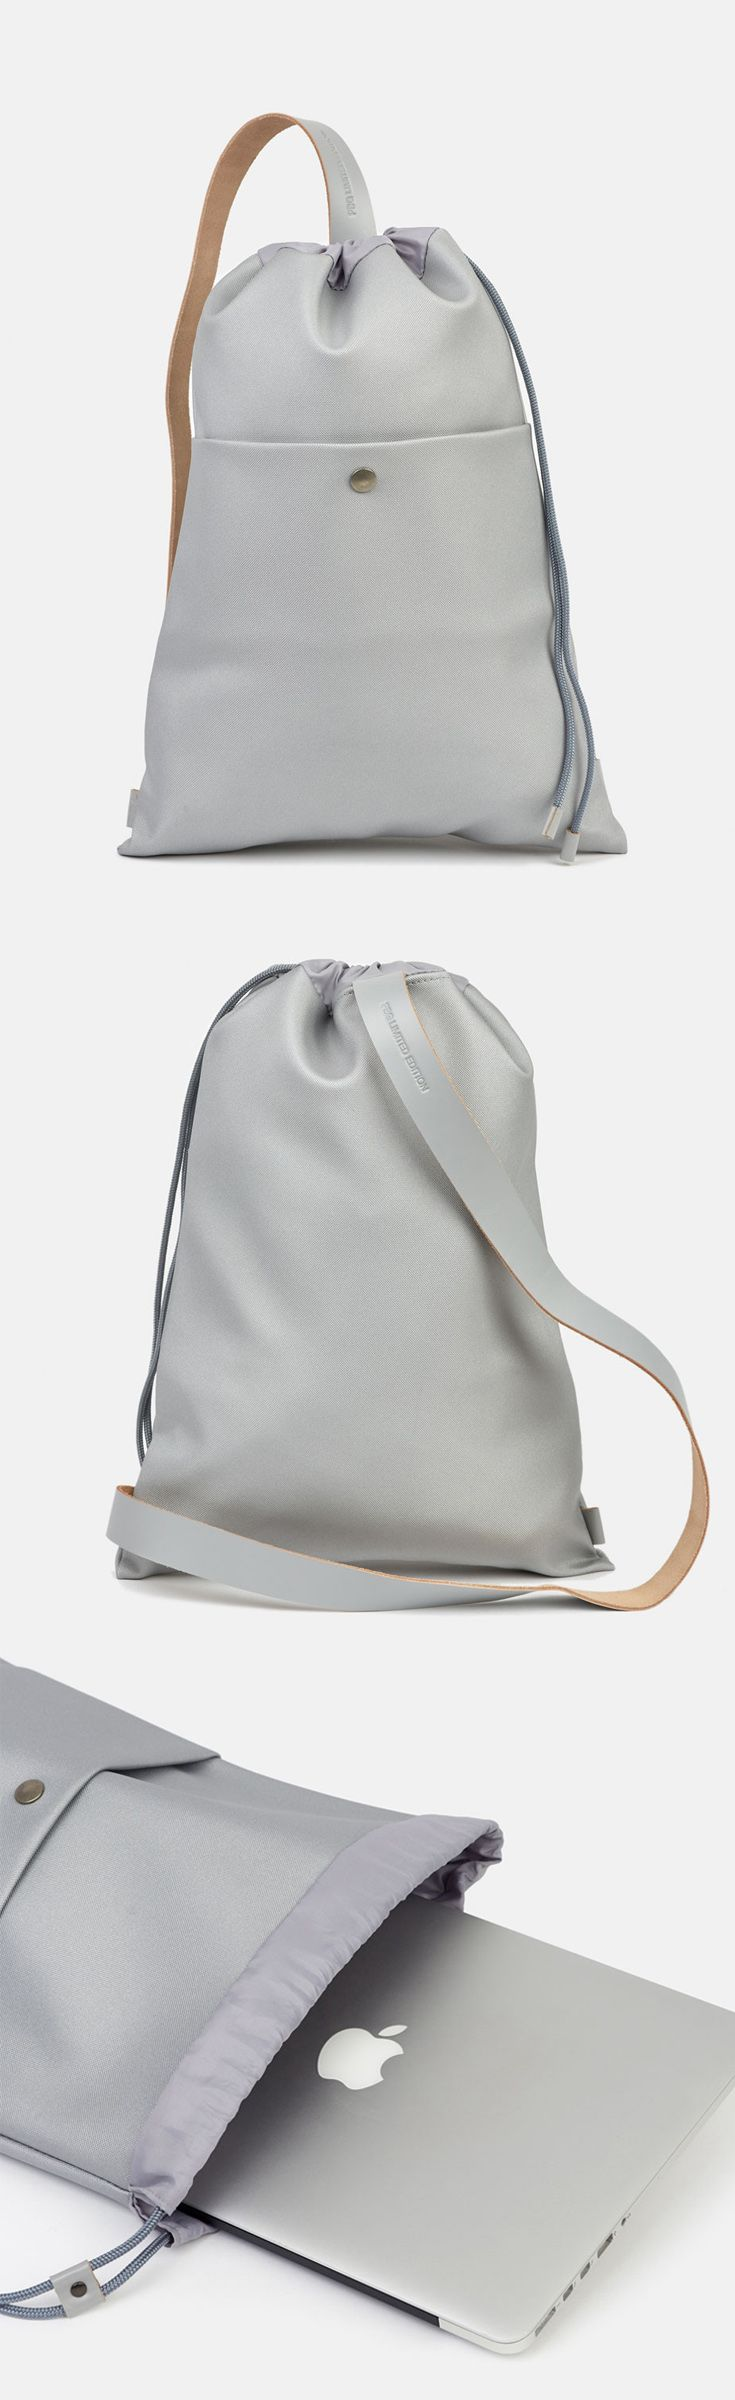 Keep it simple and light with the Minimalist Single strap backpack, which fits your daily essentials.